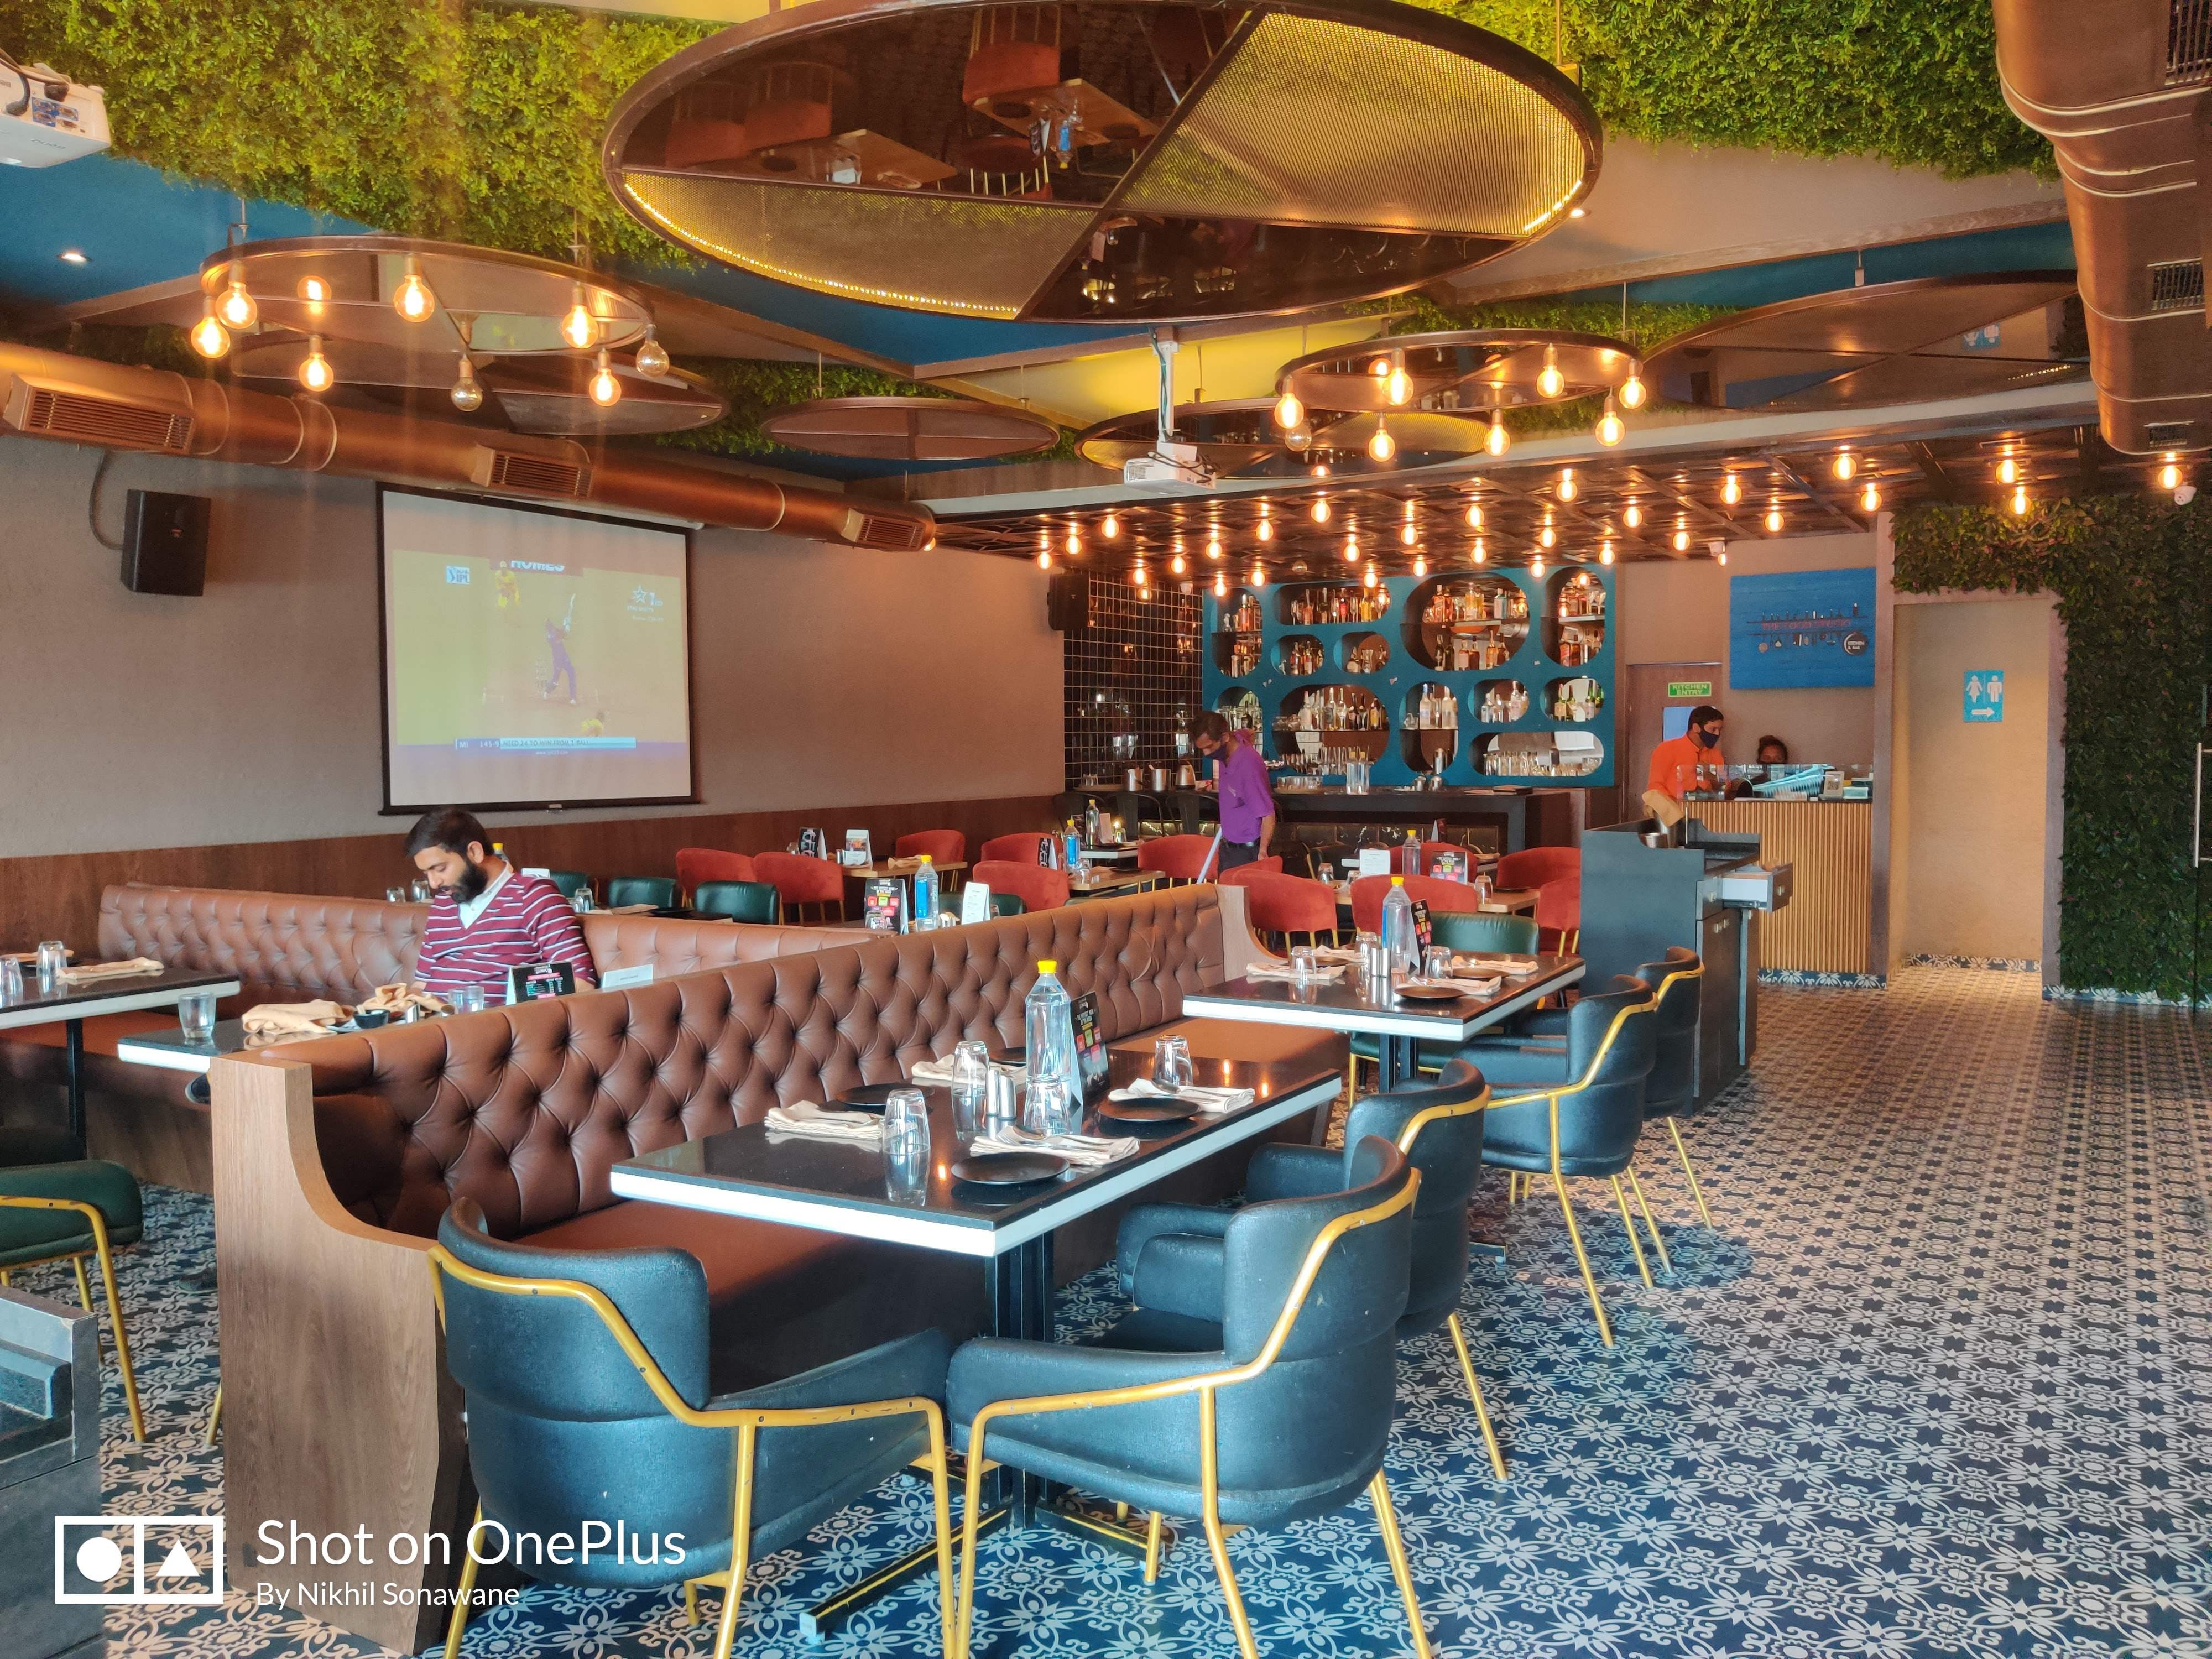 Restaurant,Building,Function hall,Interior design,Room,Leisure,Table,Real estate,Architecture,Hotel